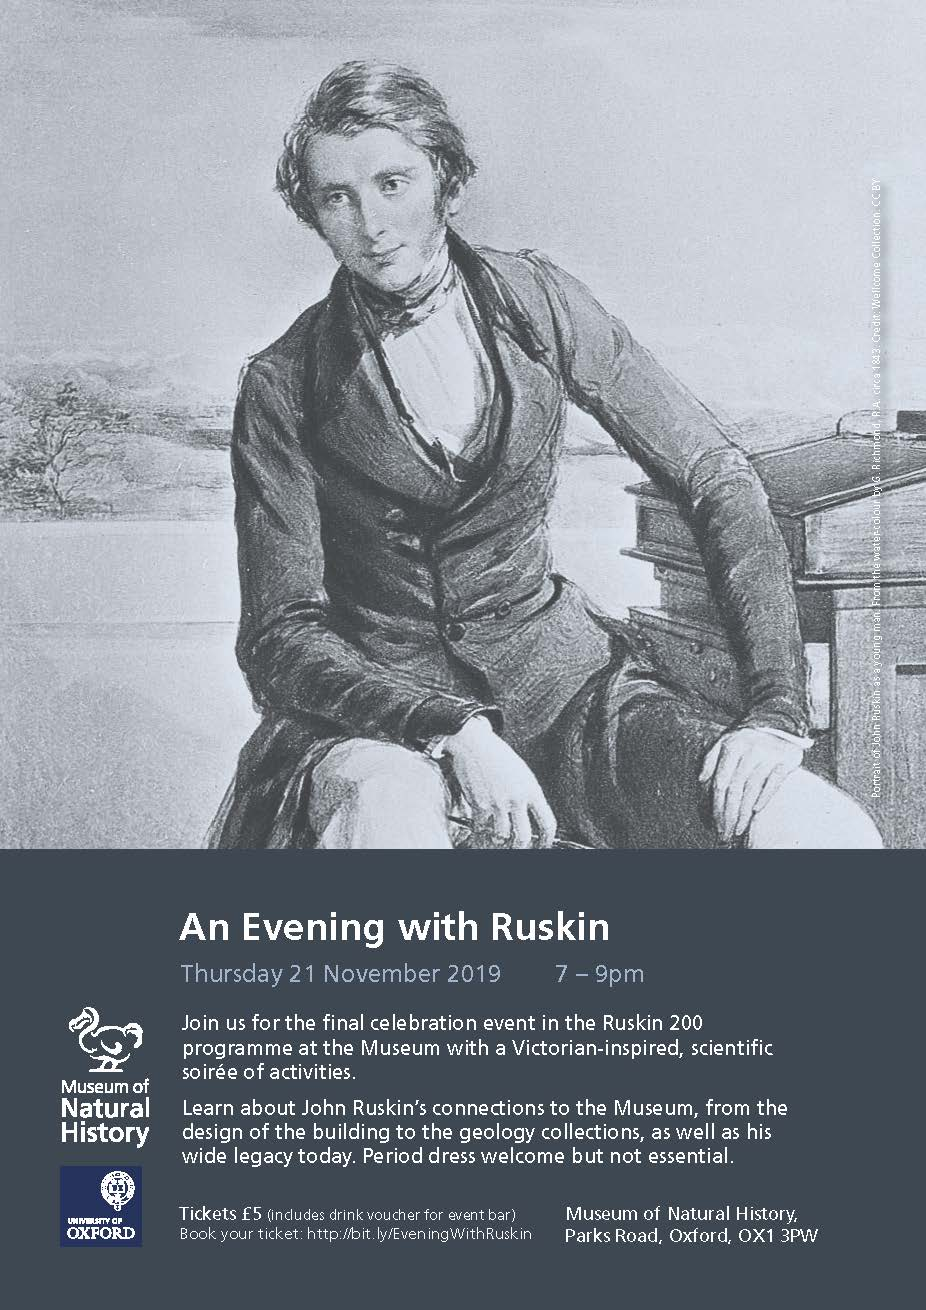 Poster for An Evening with Ruskin